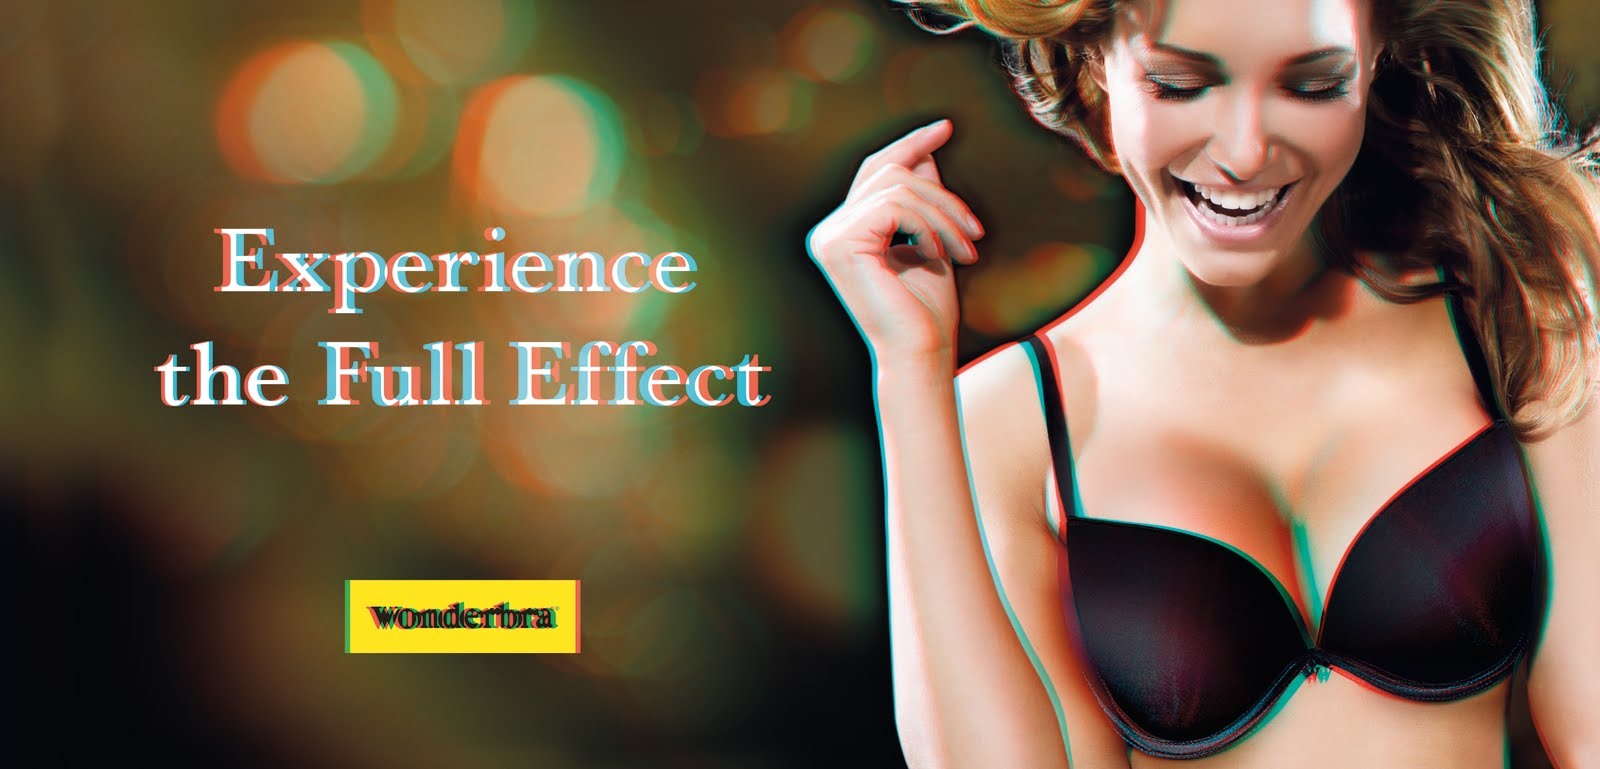 new bra - the Full effect.